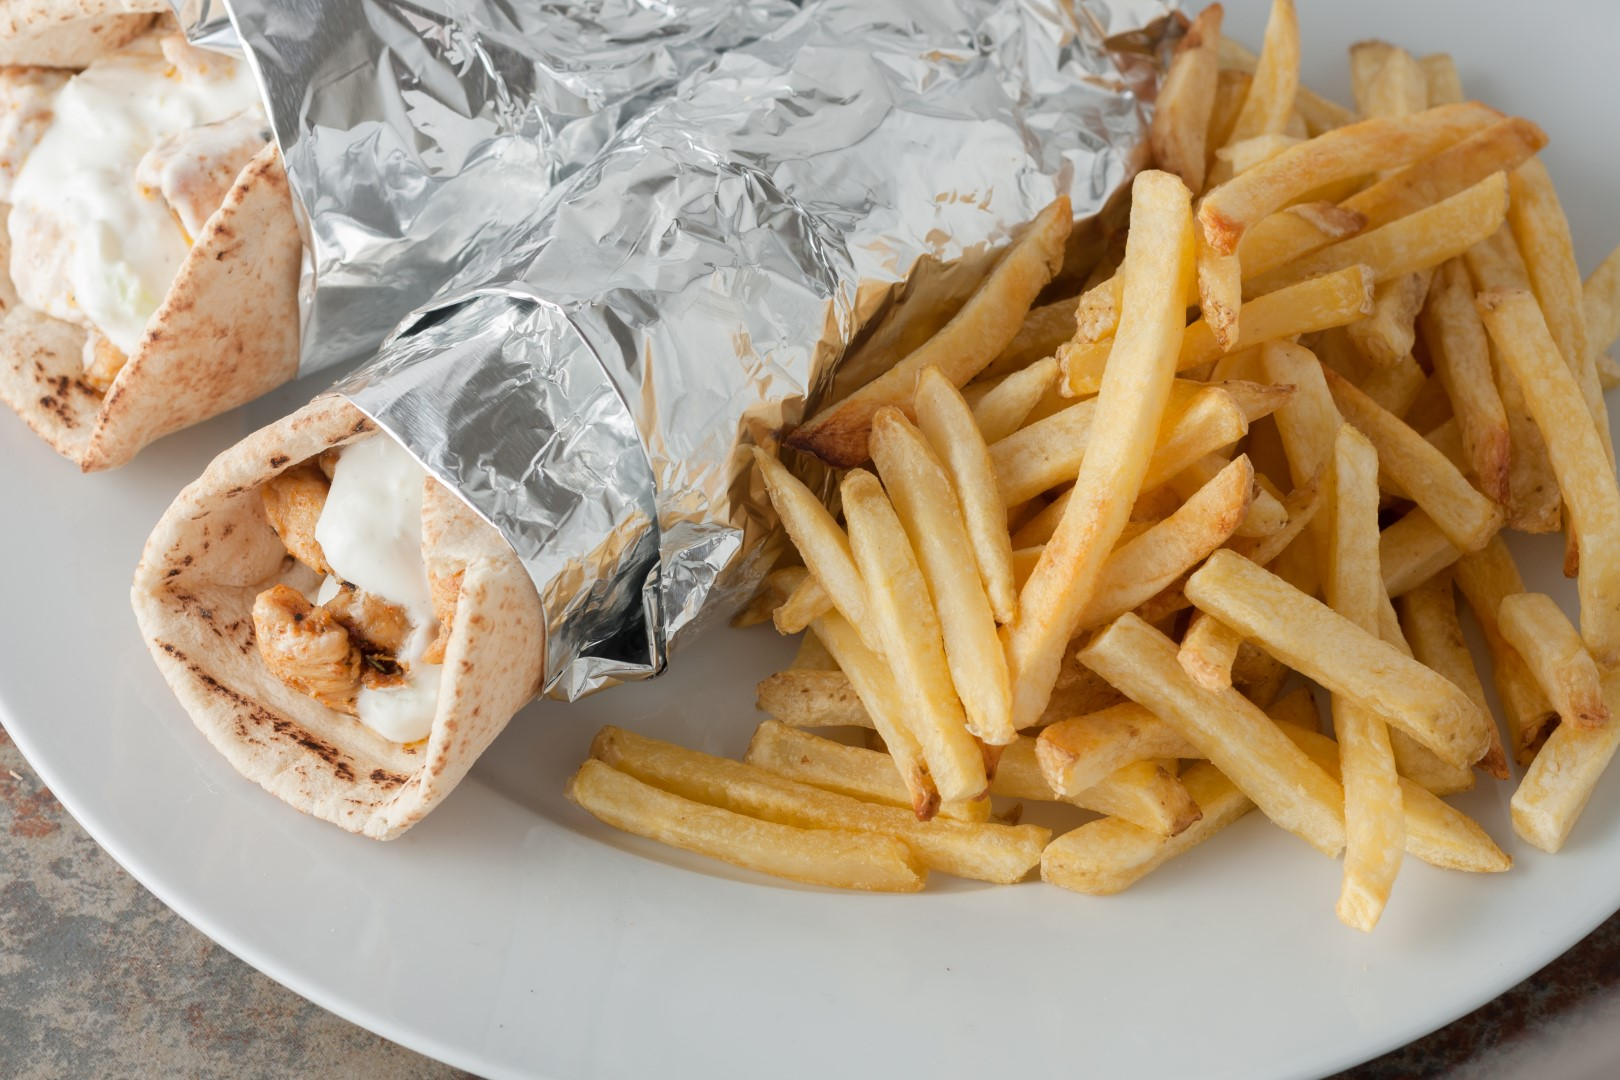 traditional greek food, souvlaki also known as gyros with meat and homemade tzatziki sauce with french fries on white plate